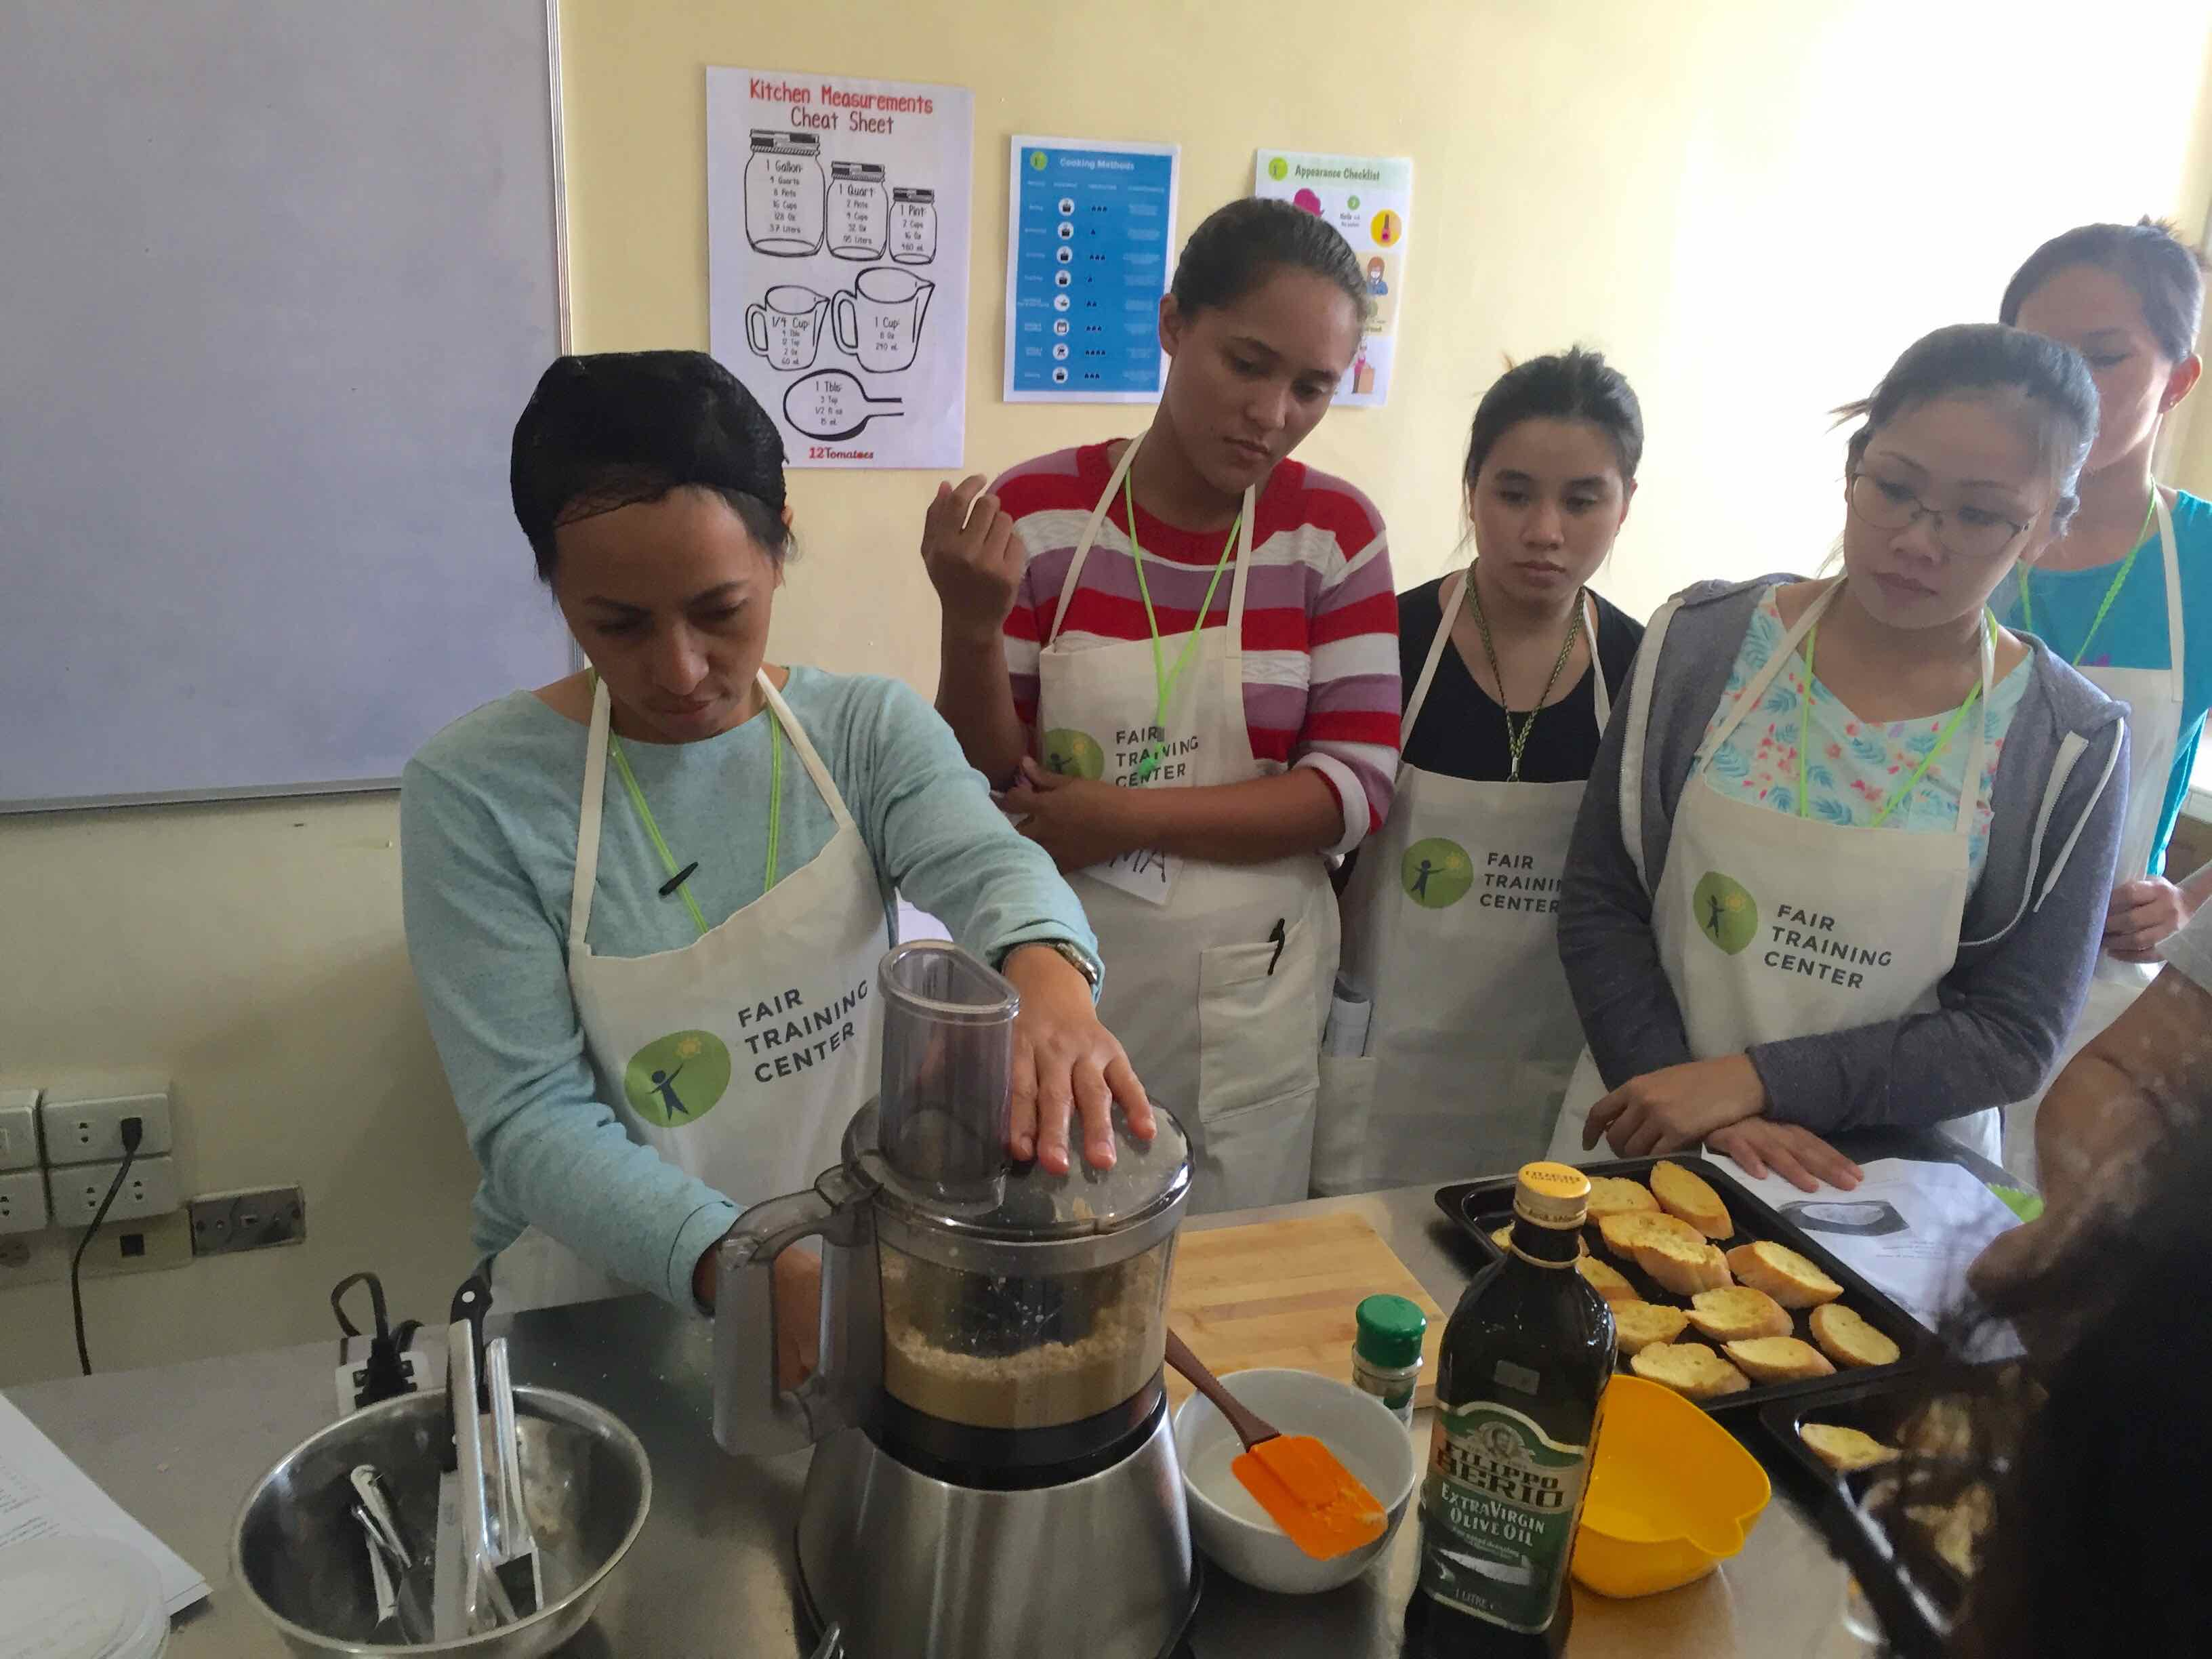 READY FOR TAKE OFF. From learning how to cook to knowing their rights, the Fair Training Center makes sure that aspiring domestic workers are fully prepared for life abroad. Photo from the Fair Training Center